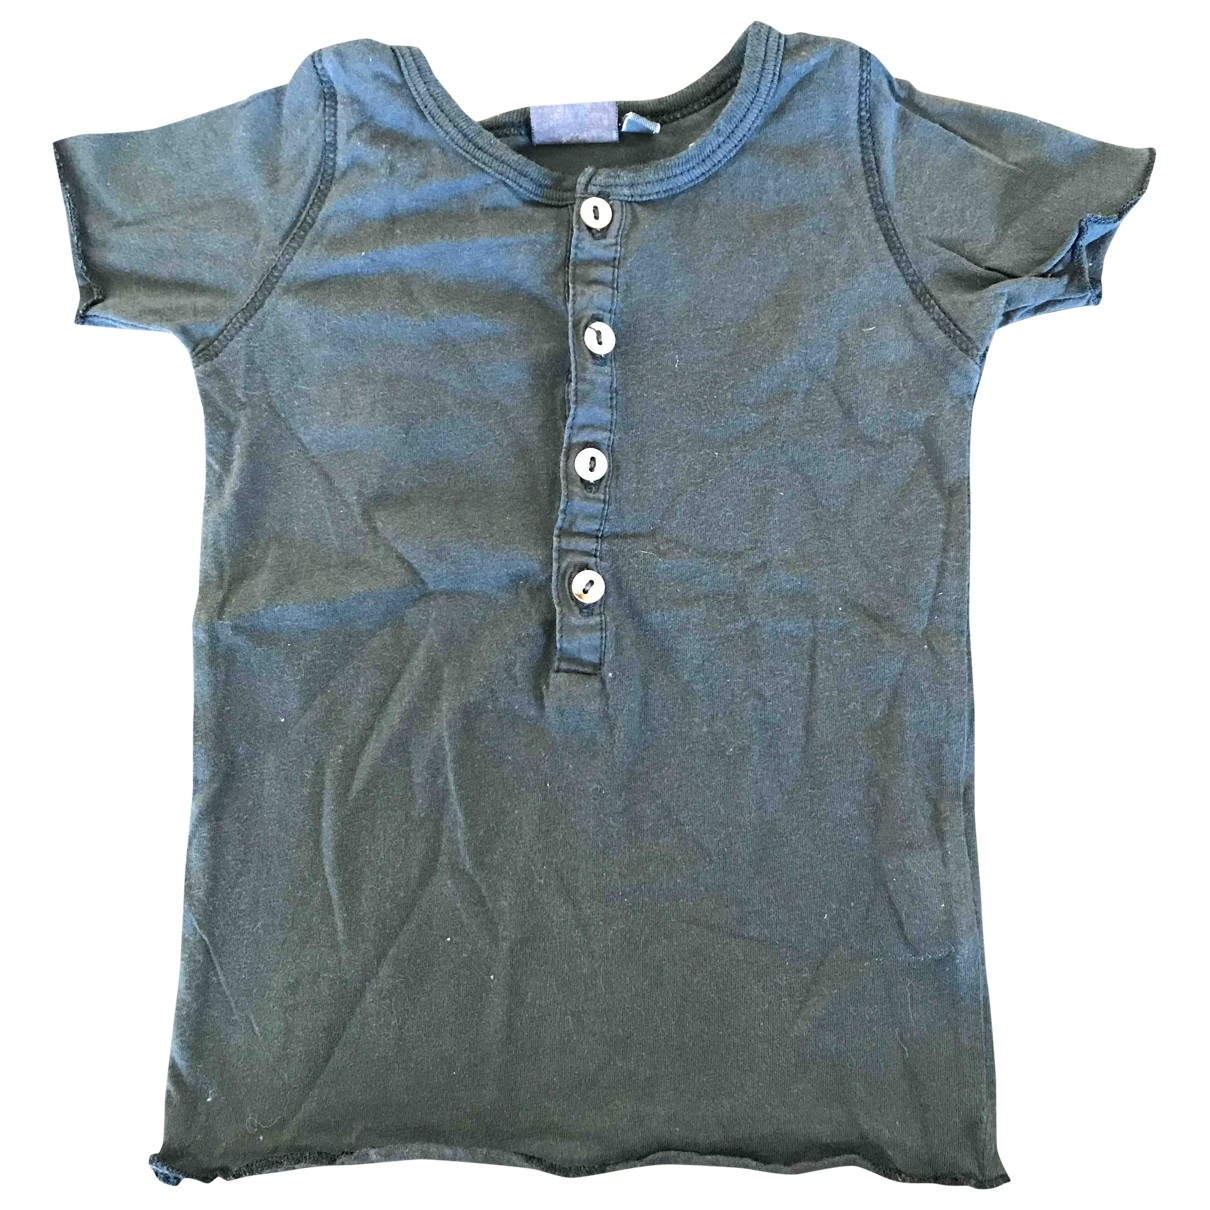 Bonton \N Blue Cotton  top for Kids 12 months - up to 74cm FR